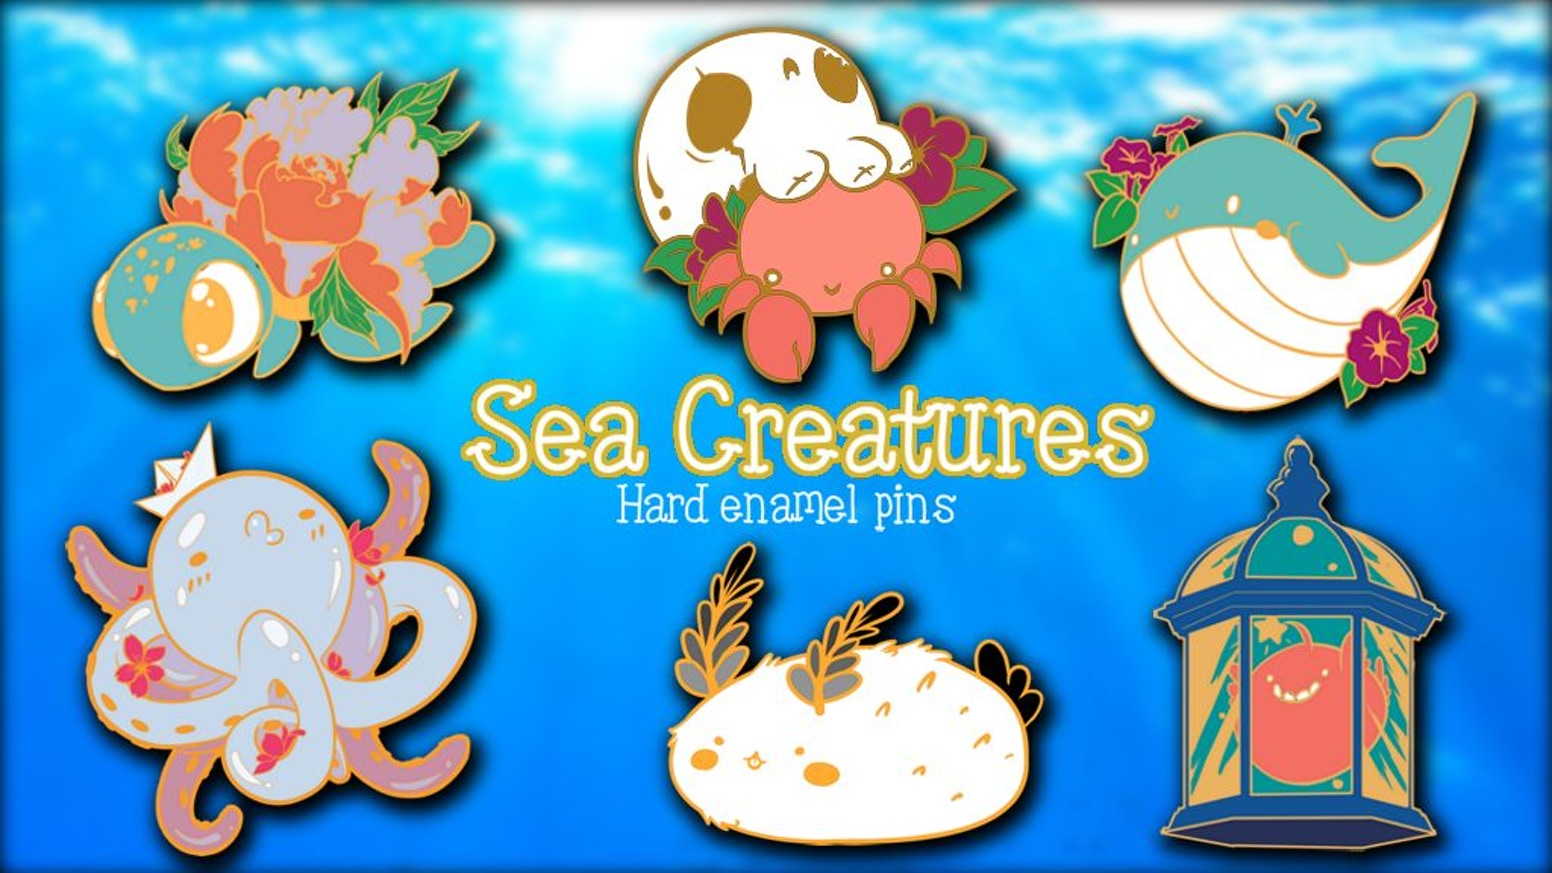 Sea Creatures is a project with cute enamel pins design inspired by the under sea life! If you miss the campain, you can find now the pin's on my etsy!